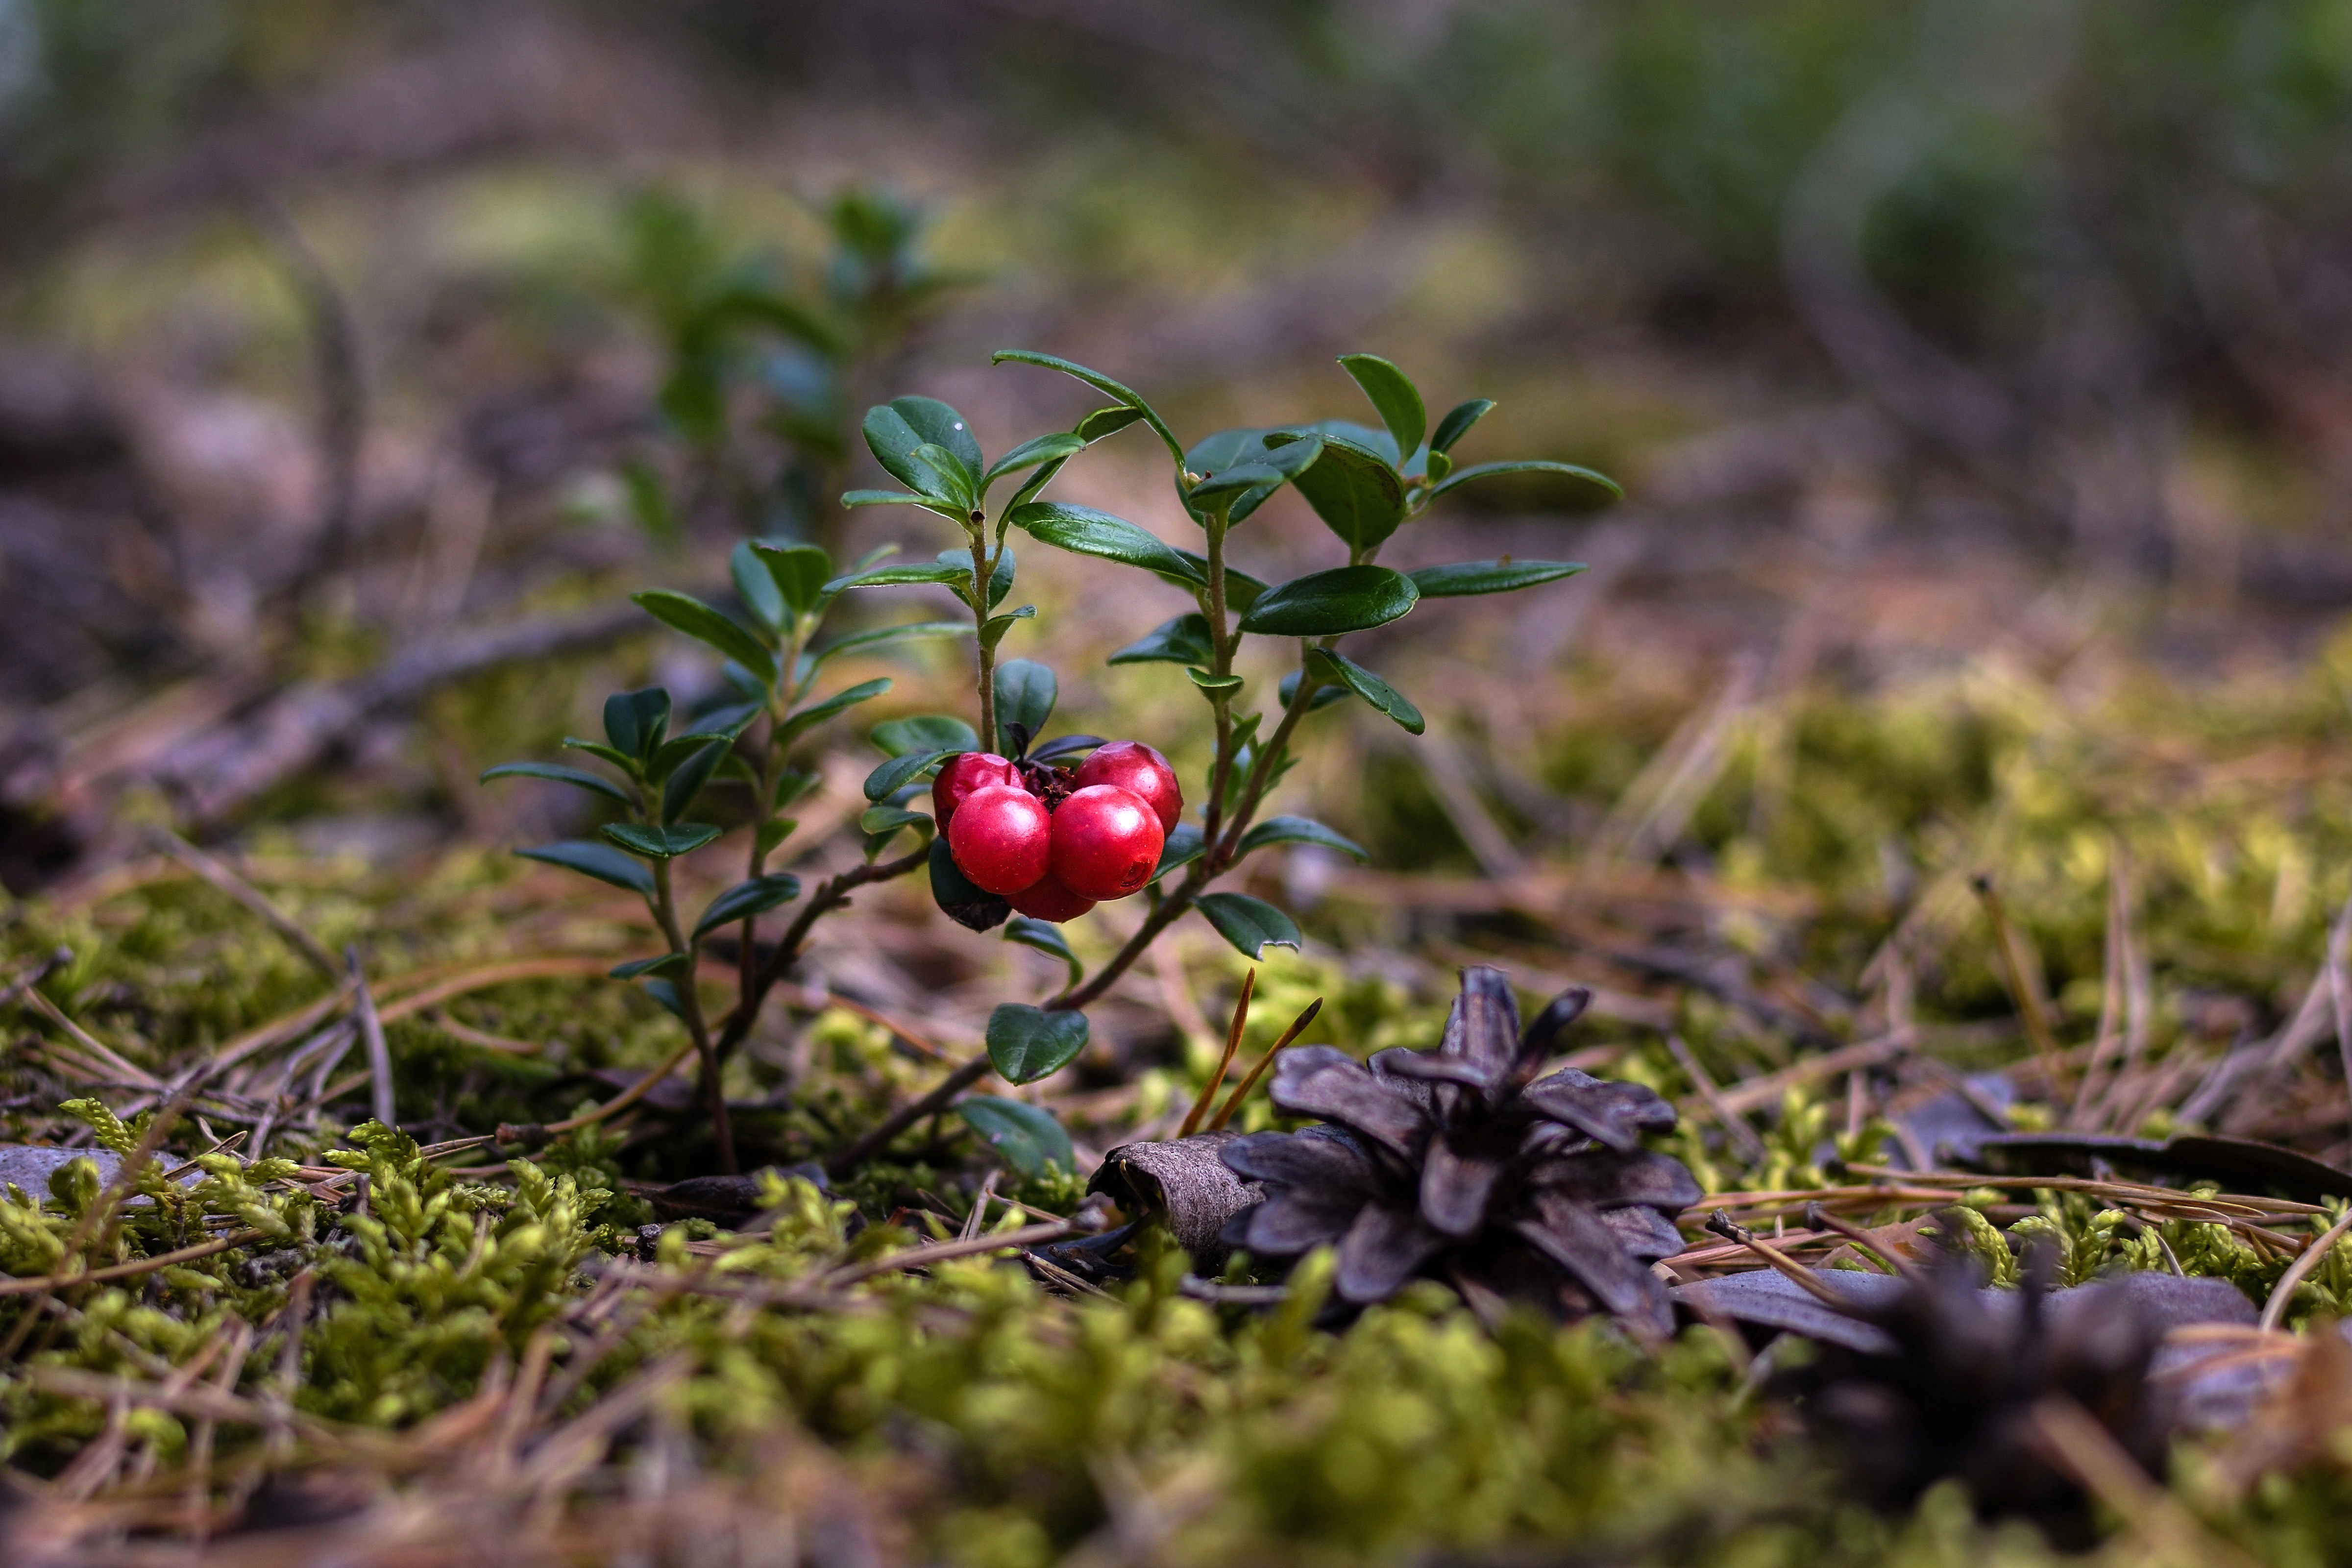 Red berries growing in moss. Photo